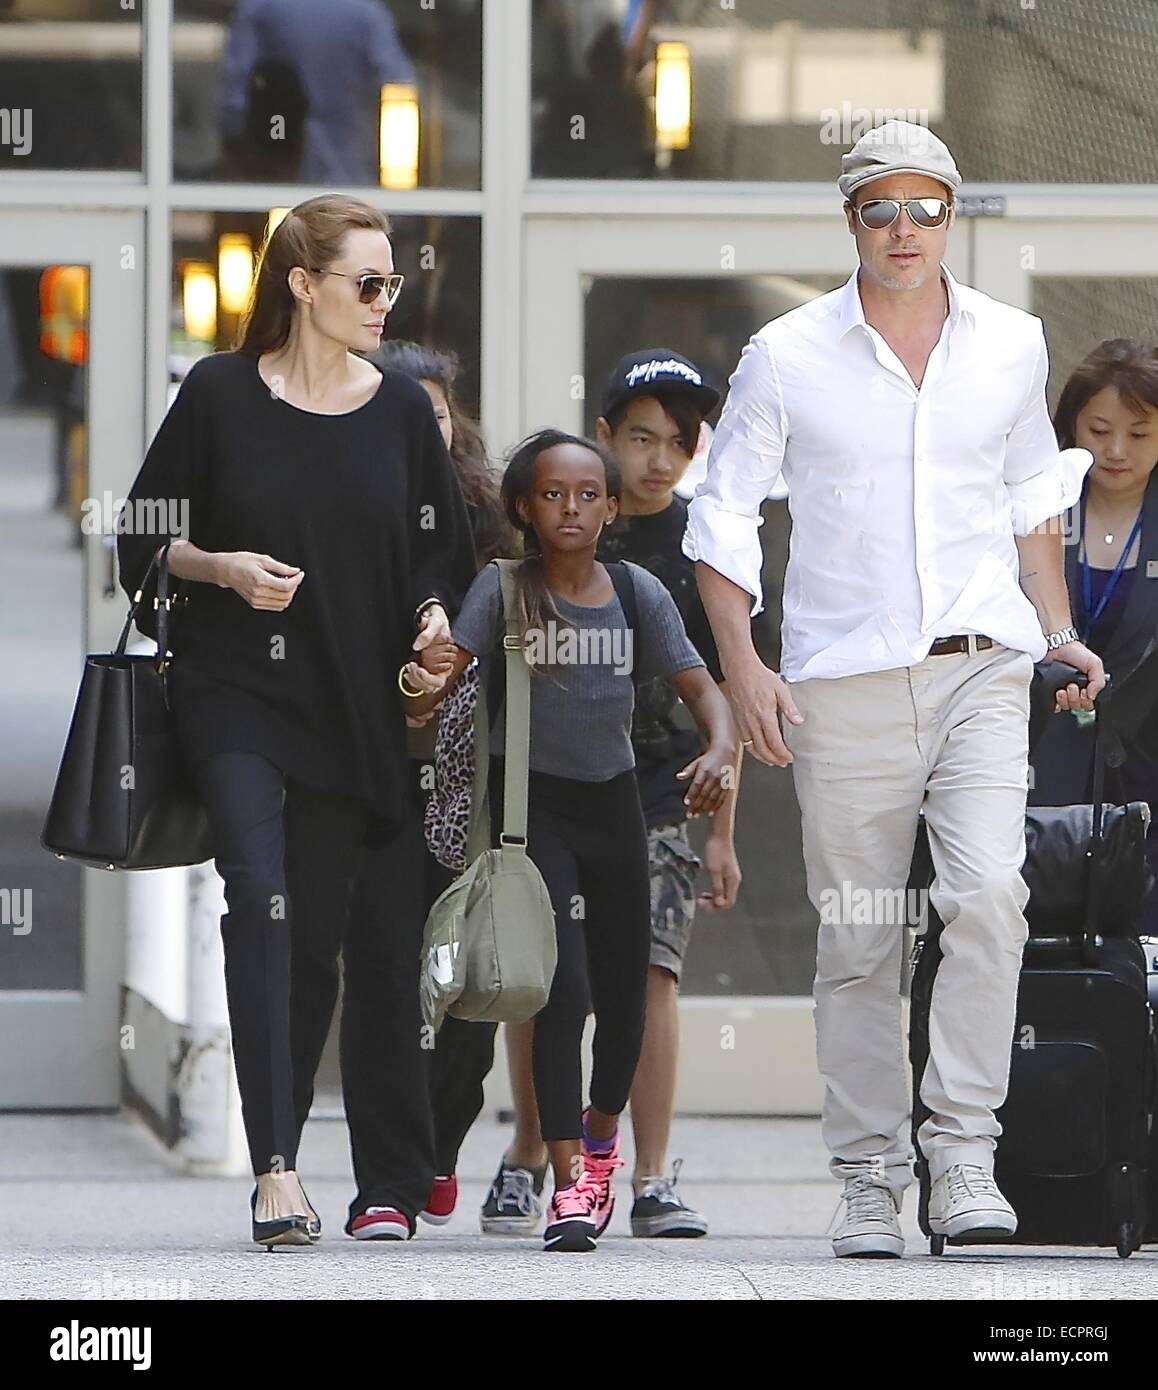 Brad Pitt et Angelina Jolie arrivent à Los Angeles International (LAX) aéroport avec leurs enfants Maddox Photo Stock